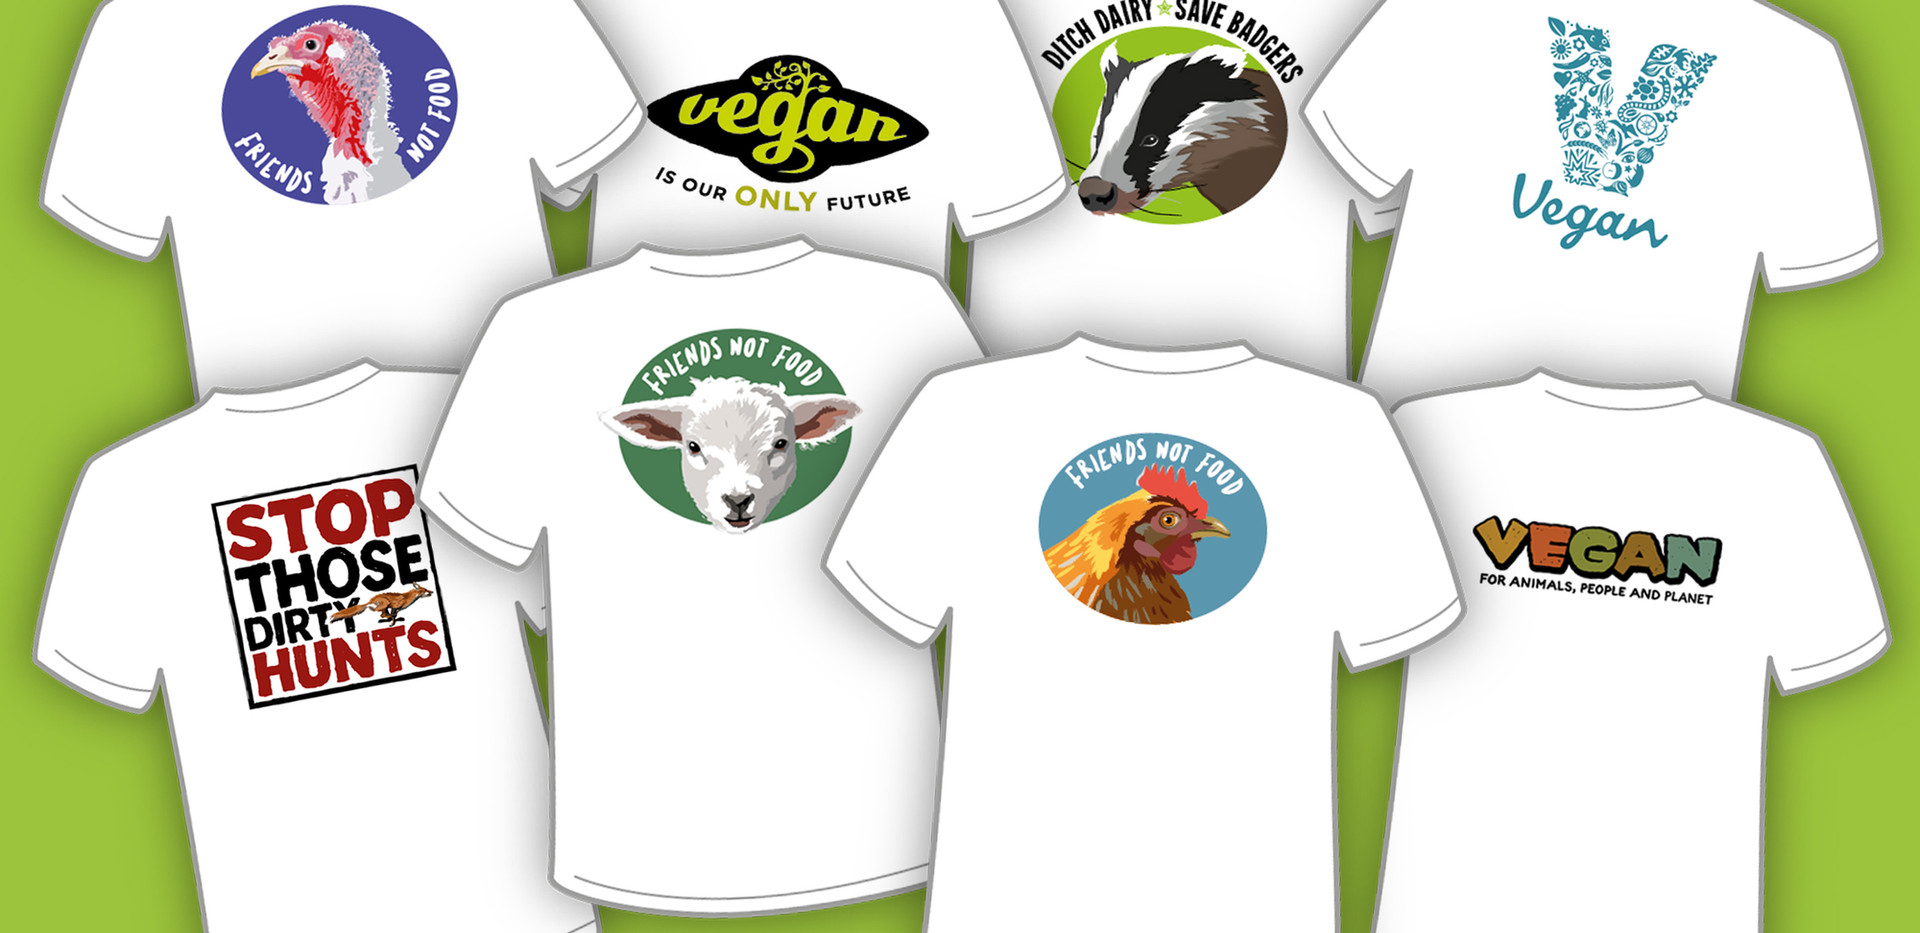 vegan t-shirts.jpg